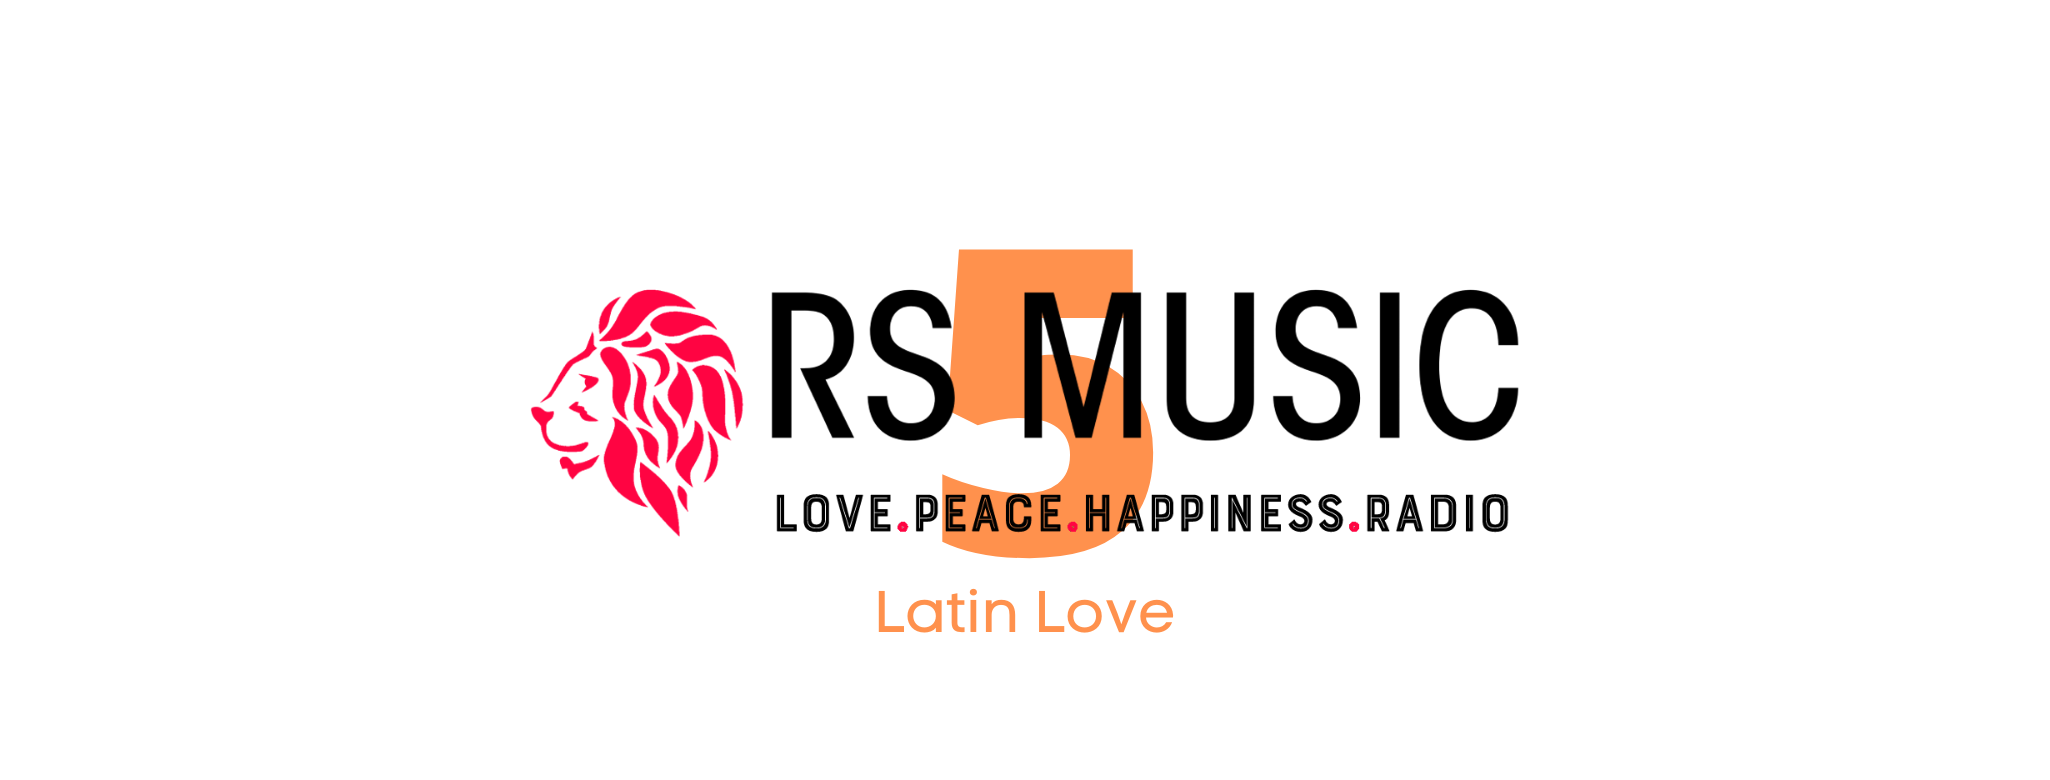 RSMUSIC 5 Amor Latino, Latin Love